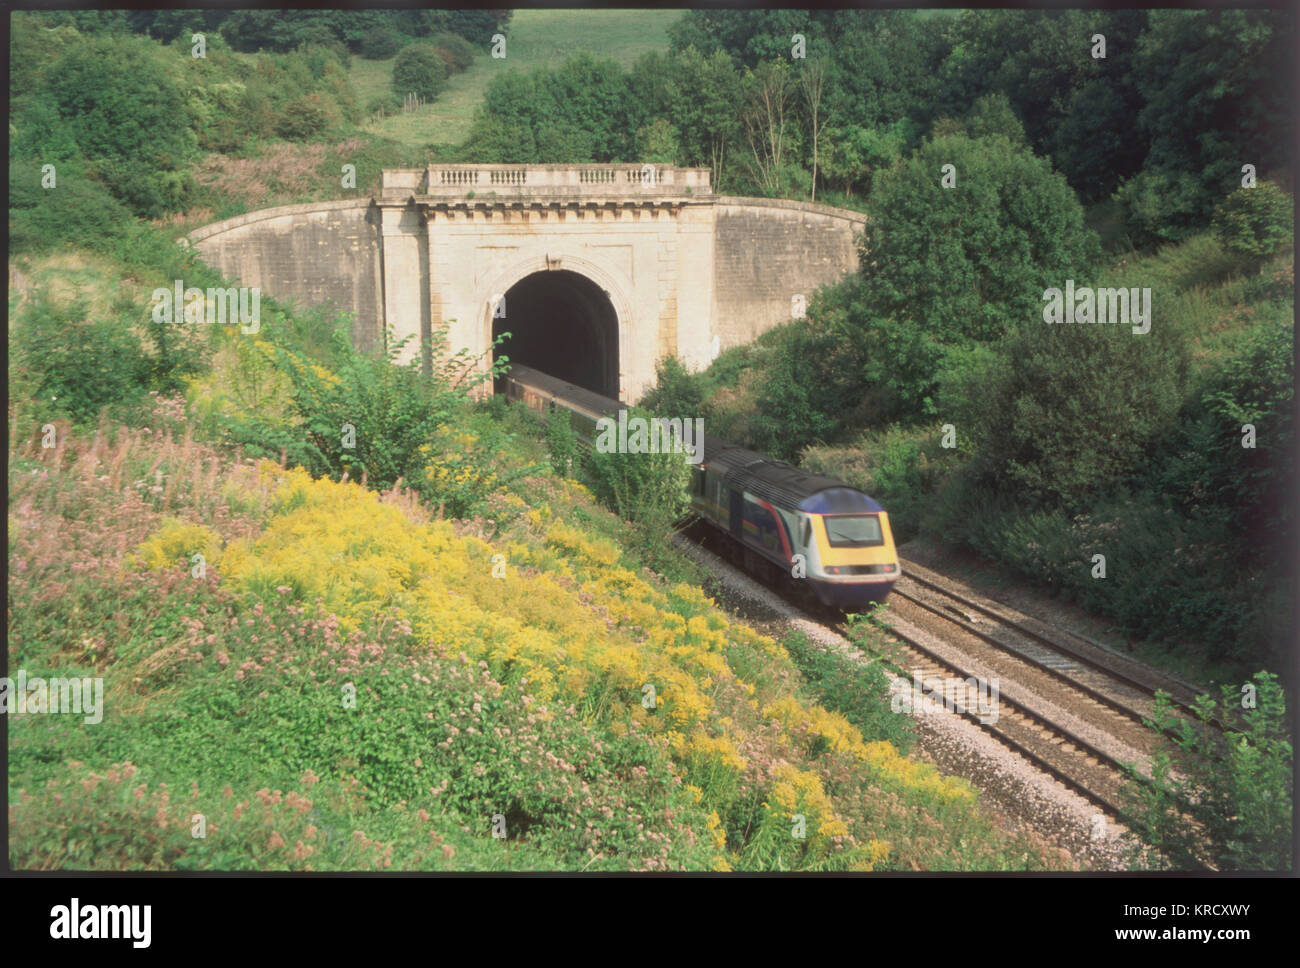 Isambard Kingdom Brunel's  famous Box Tunnel, Corsham,  Wiltshire, took 5 years (1836- 41) to build. Two miles - Stock Image